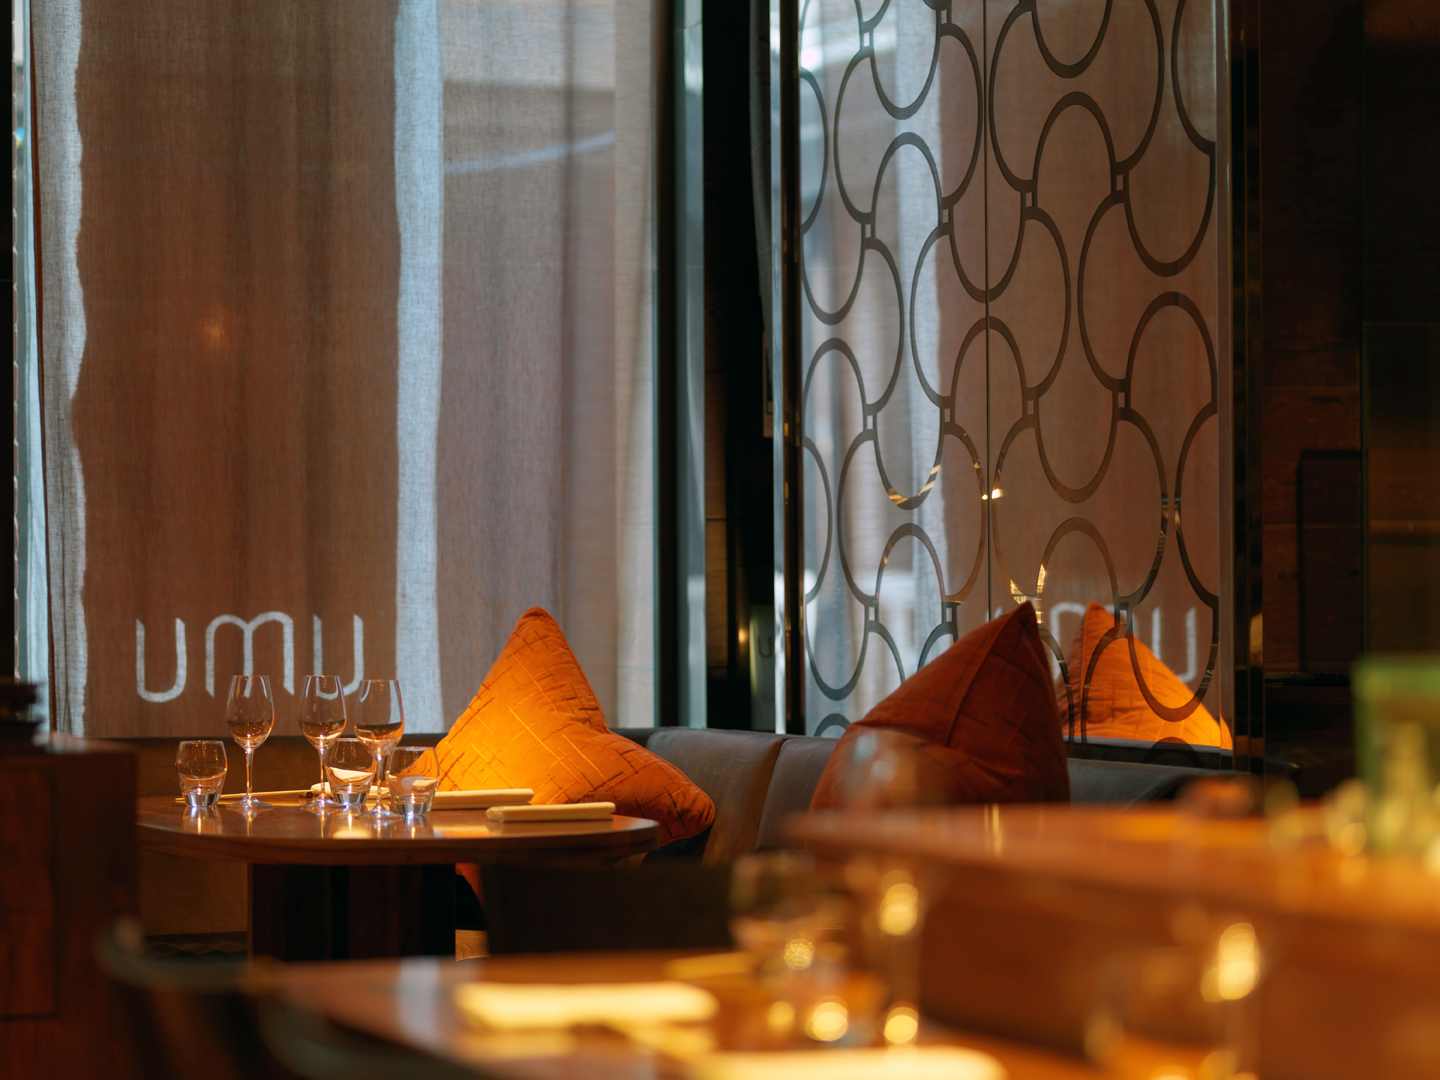 Umu restaurant, Mayfair, London